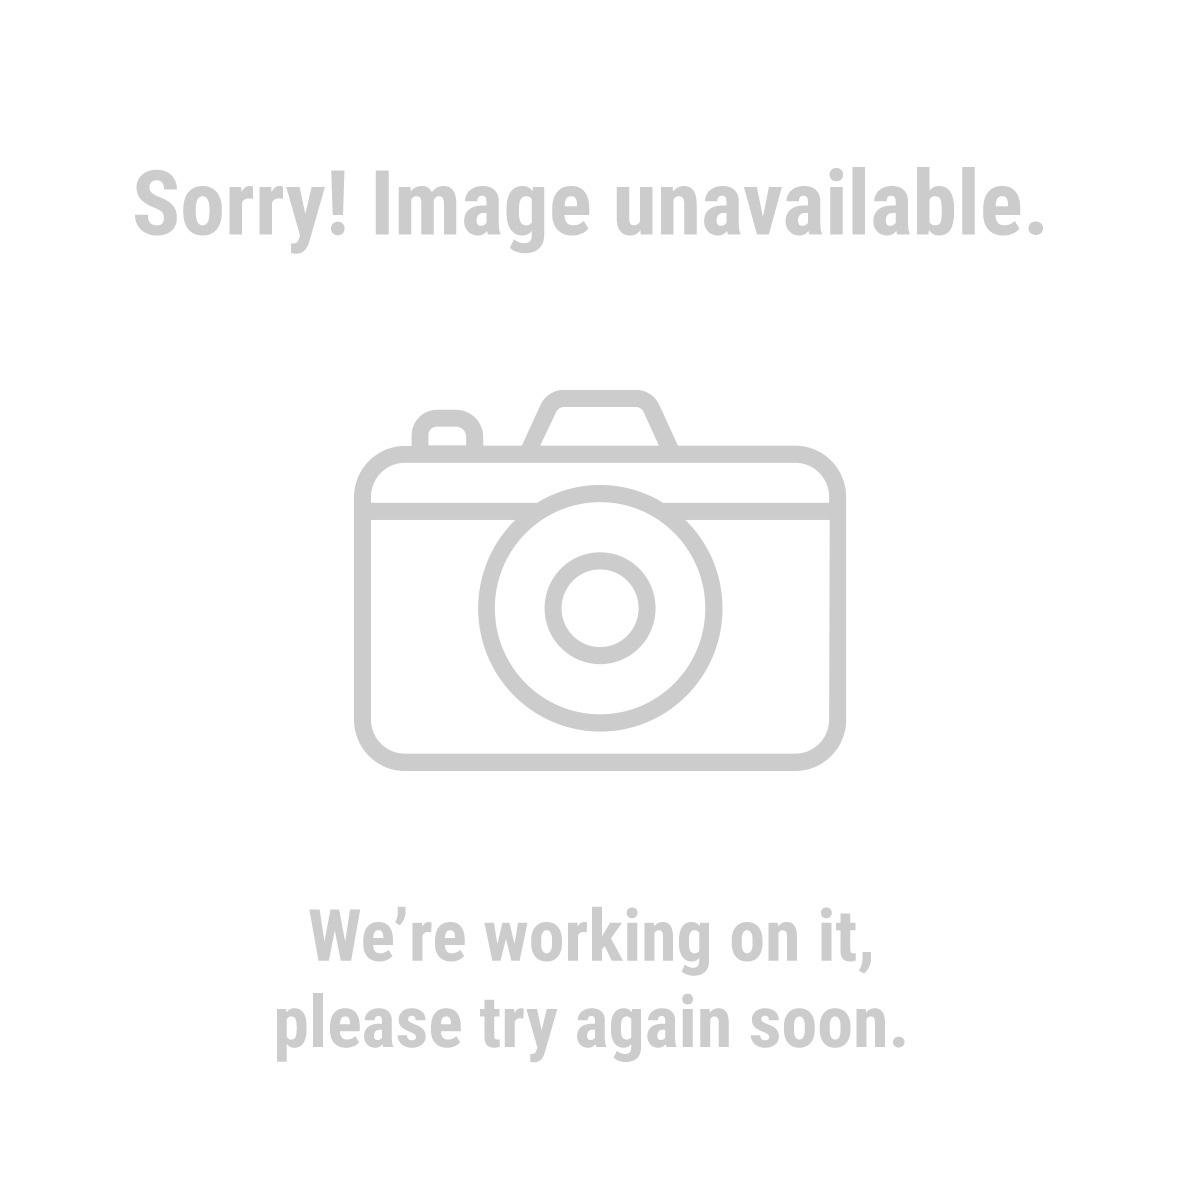 Grant's 63358 Microfiber Cleaning Cloths 4 Pk.